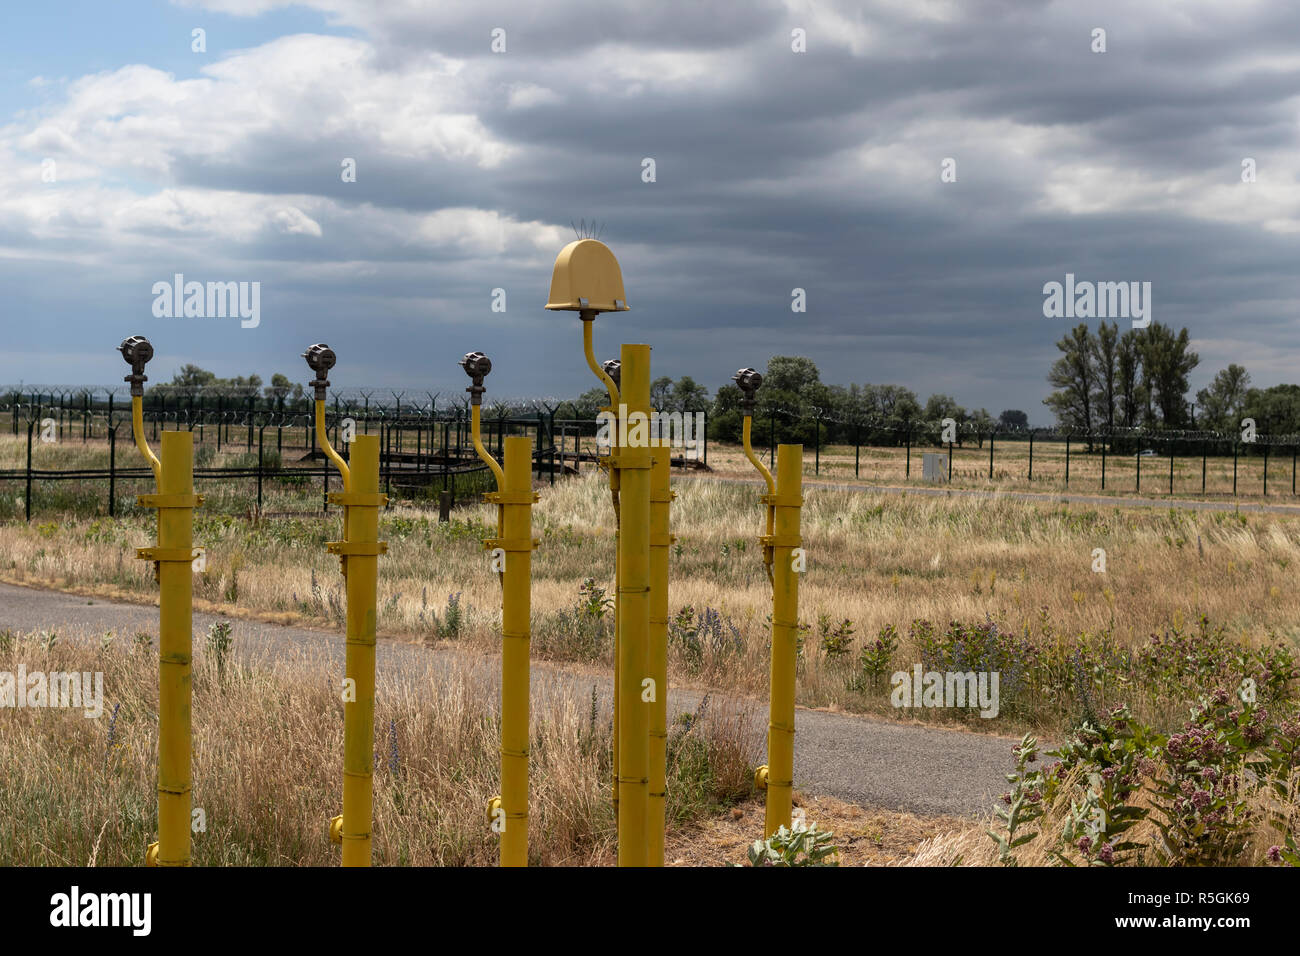 Airport Approach Lighting System at the end of a runway with heavy clouds in background. - Stock Image